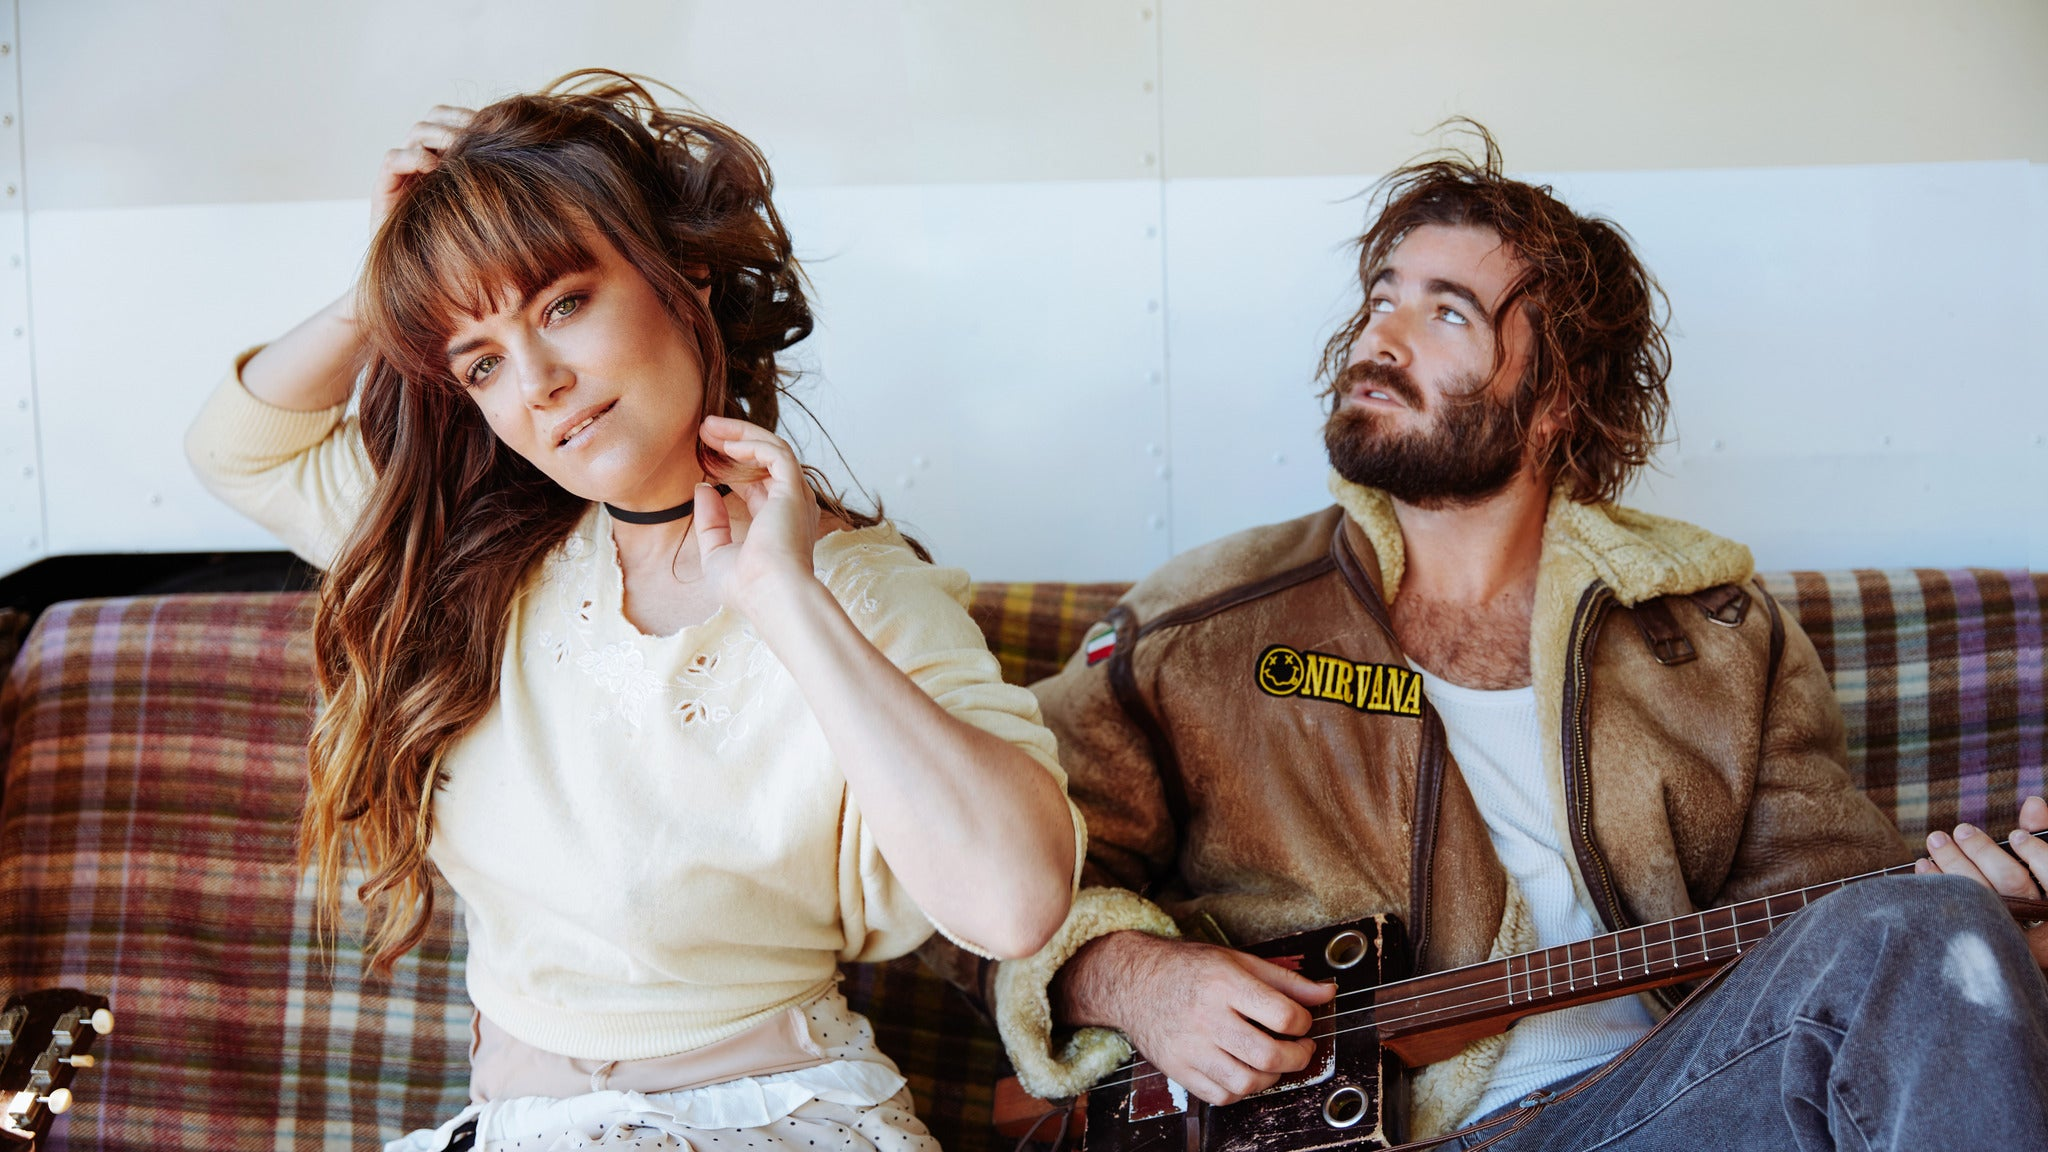 Angus & Julia Stone - Snow US Tour at The Fillmore